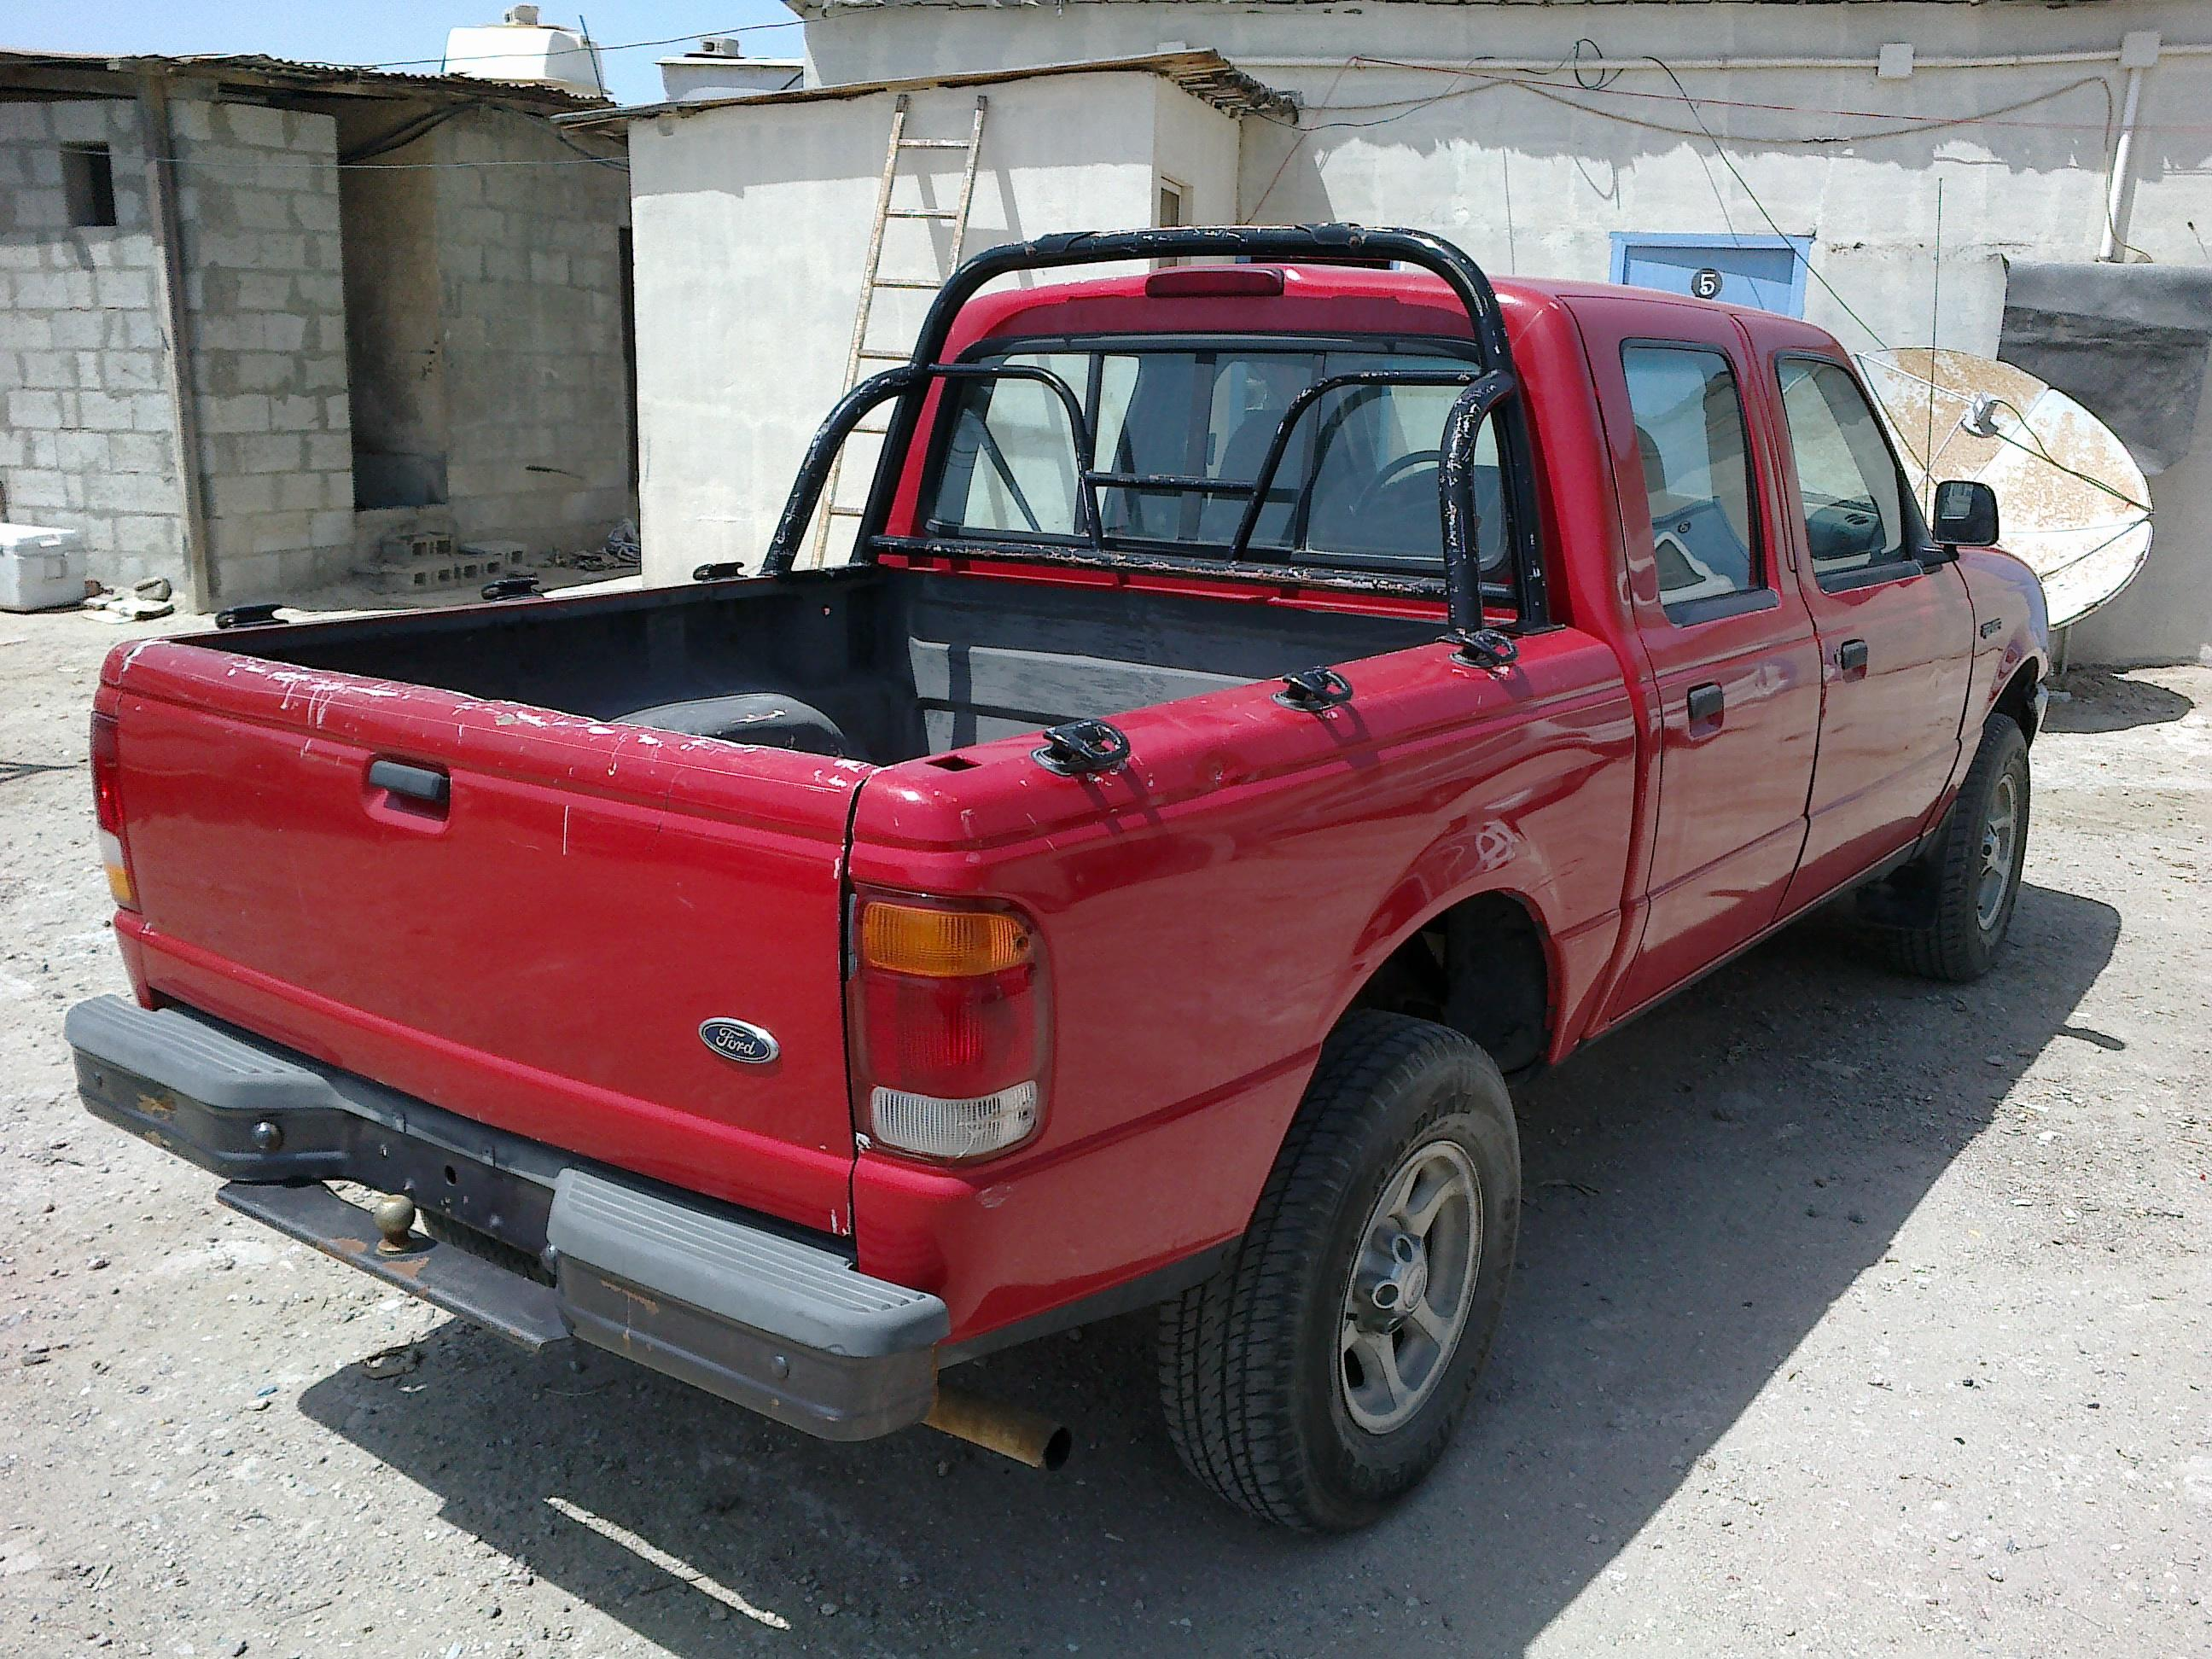 wkb92 1999 ford ranger super cabpickup 2d specs photos modification info at cardomain. Black Bedroom Furniture Sets. Home Design Ideas